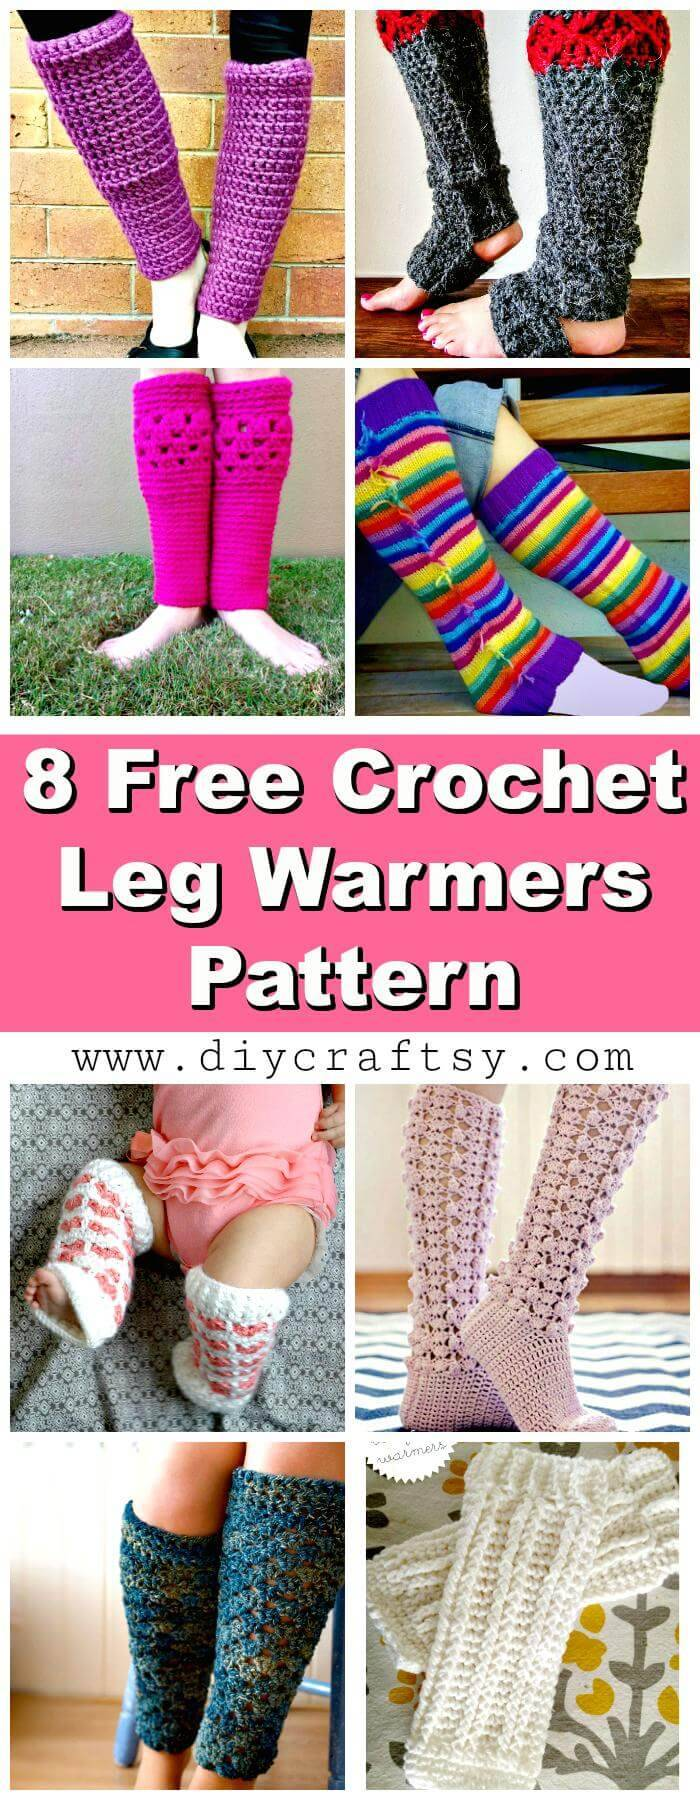 Crochet Leg Warmers - 8 Free Crochet Leg Warmer Patterns - Crochet